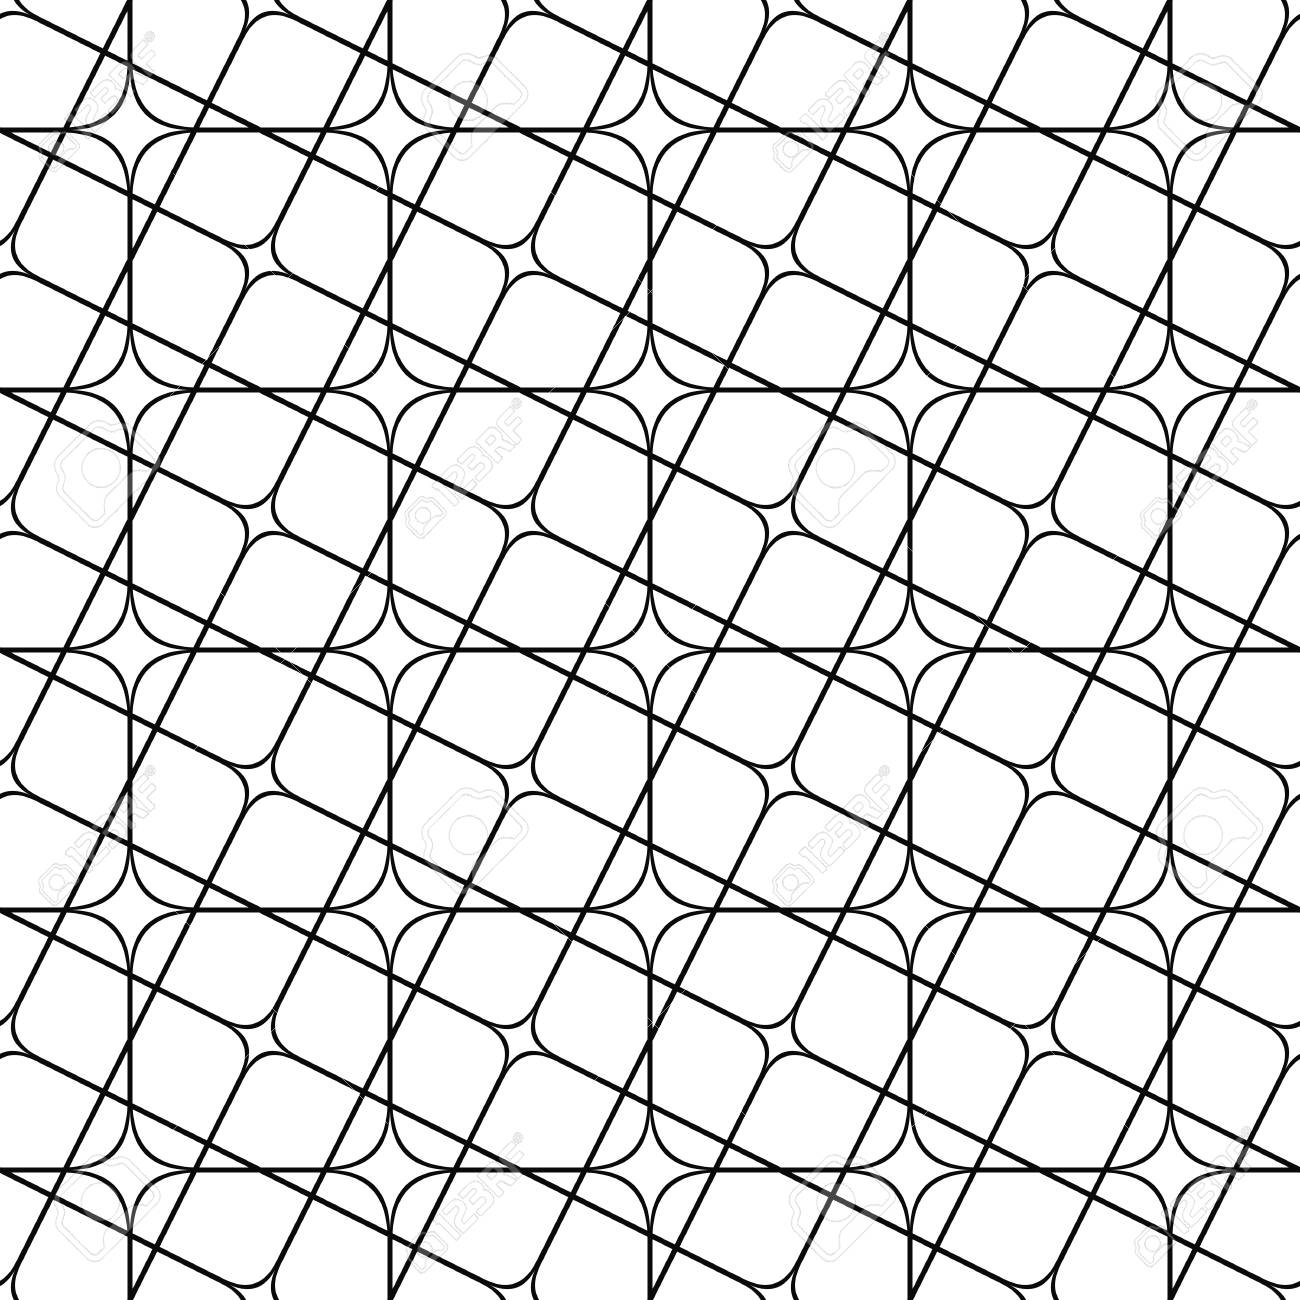 Seamless abstract monochrome angular curved grid pattern